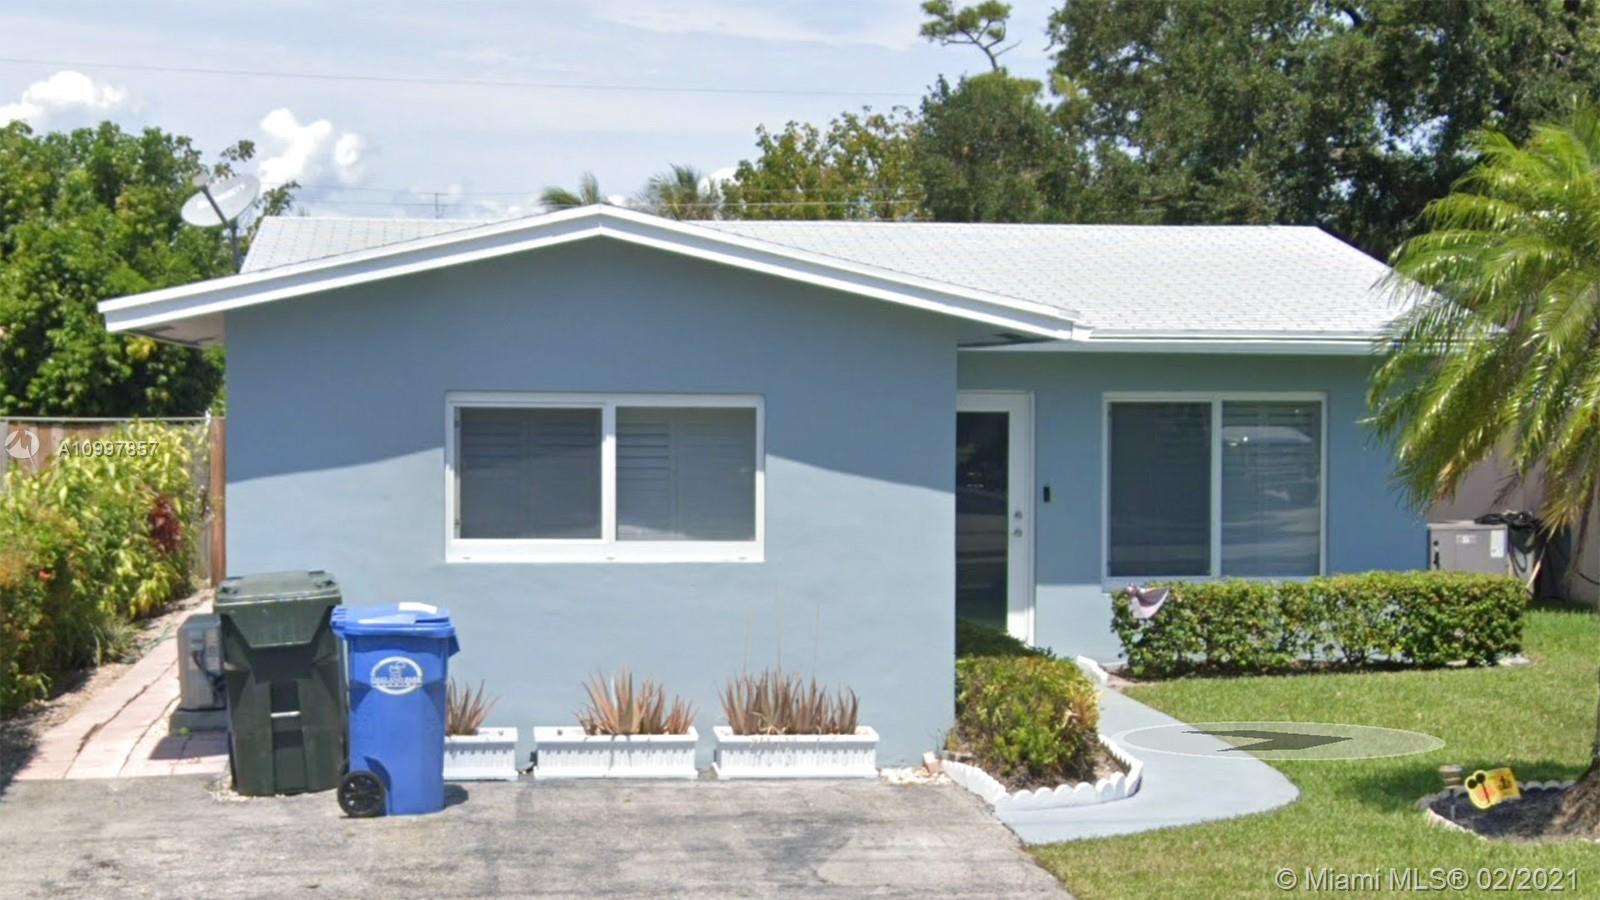 This lovely home with a large pool is located in the heart of Oakland Park & is exemplary of the pride of ownership. It has an updated kitchen, recently remodeled bathroom & impact windows & doors. The roof is just 3 years old, the electrical panel is updated, AC is 5 yrs old, water heater is 3 yrs old, has $36K plumbing upgrade to PVC, pool pump is 2 yrs old! 3rd bedroom is a flex space, perfect for a den, office or guest room. 1/2 bath is outside cabana bath for pool area. Integrated thermostat and security cameras included. All this, plus it is just blocks away from Downtown Oakland Park and the up-and-coming Culinary District. The beach, shopping and highways, access to Wilton Manors and Fort Lauderdale are no more than 10-15 minutes away. Makes a great AirBNB. Furniture negotiable.